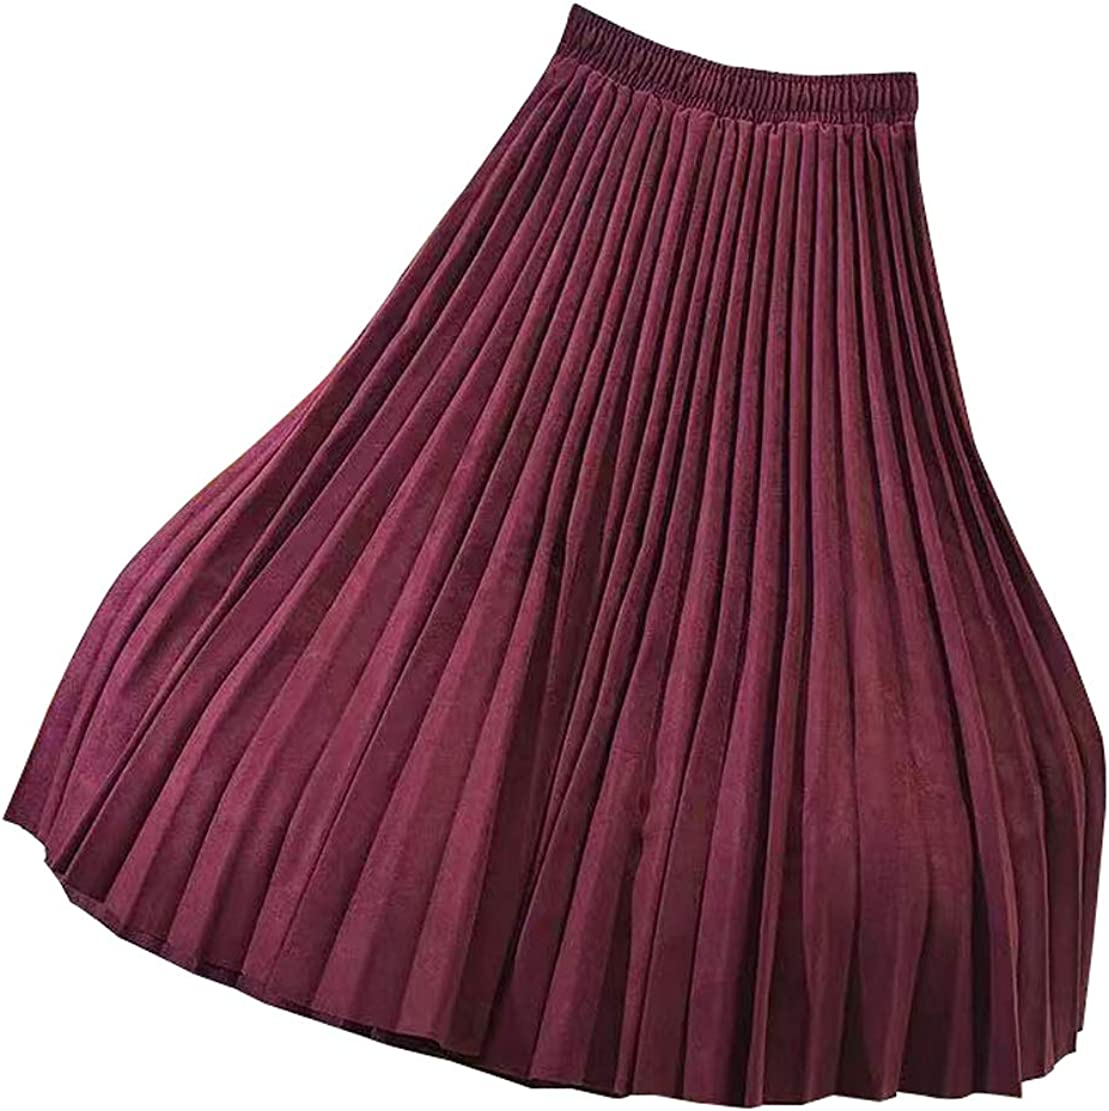 CHARTOU Womens Stretchy High Waist Faux Suede Leather Pleated Accordion Maxi Skirt